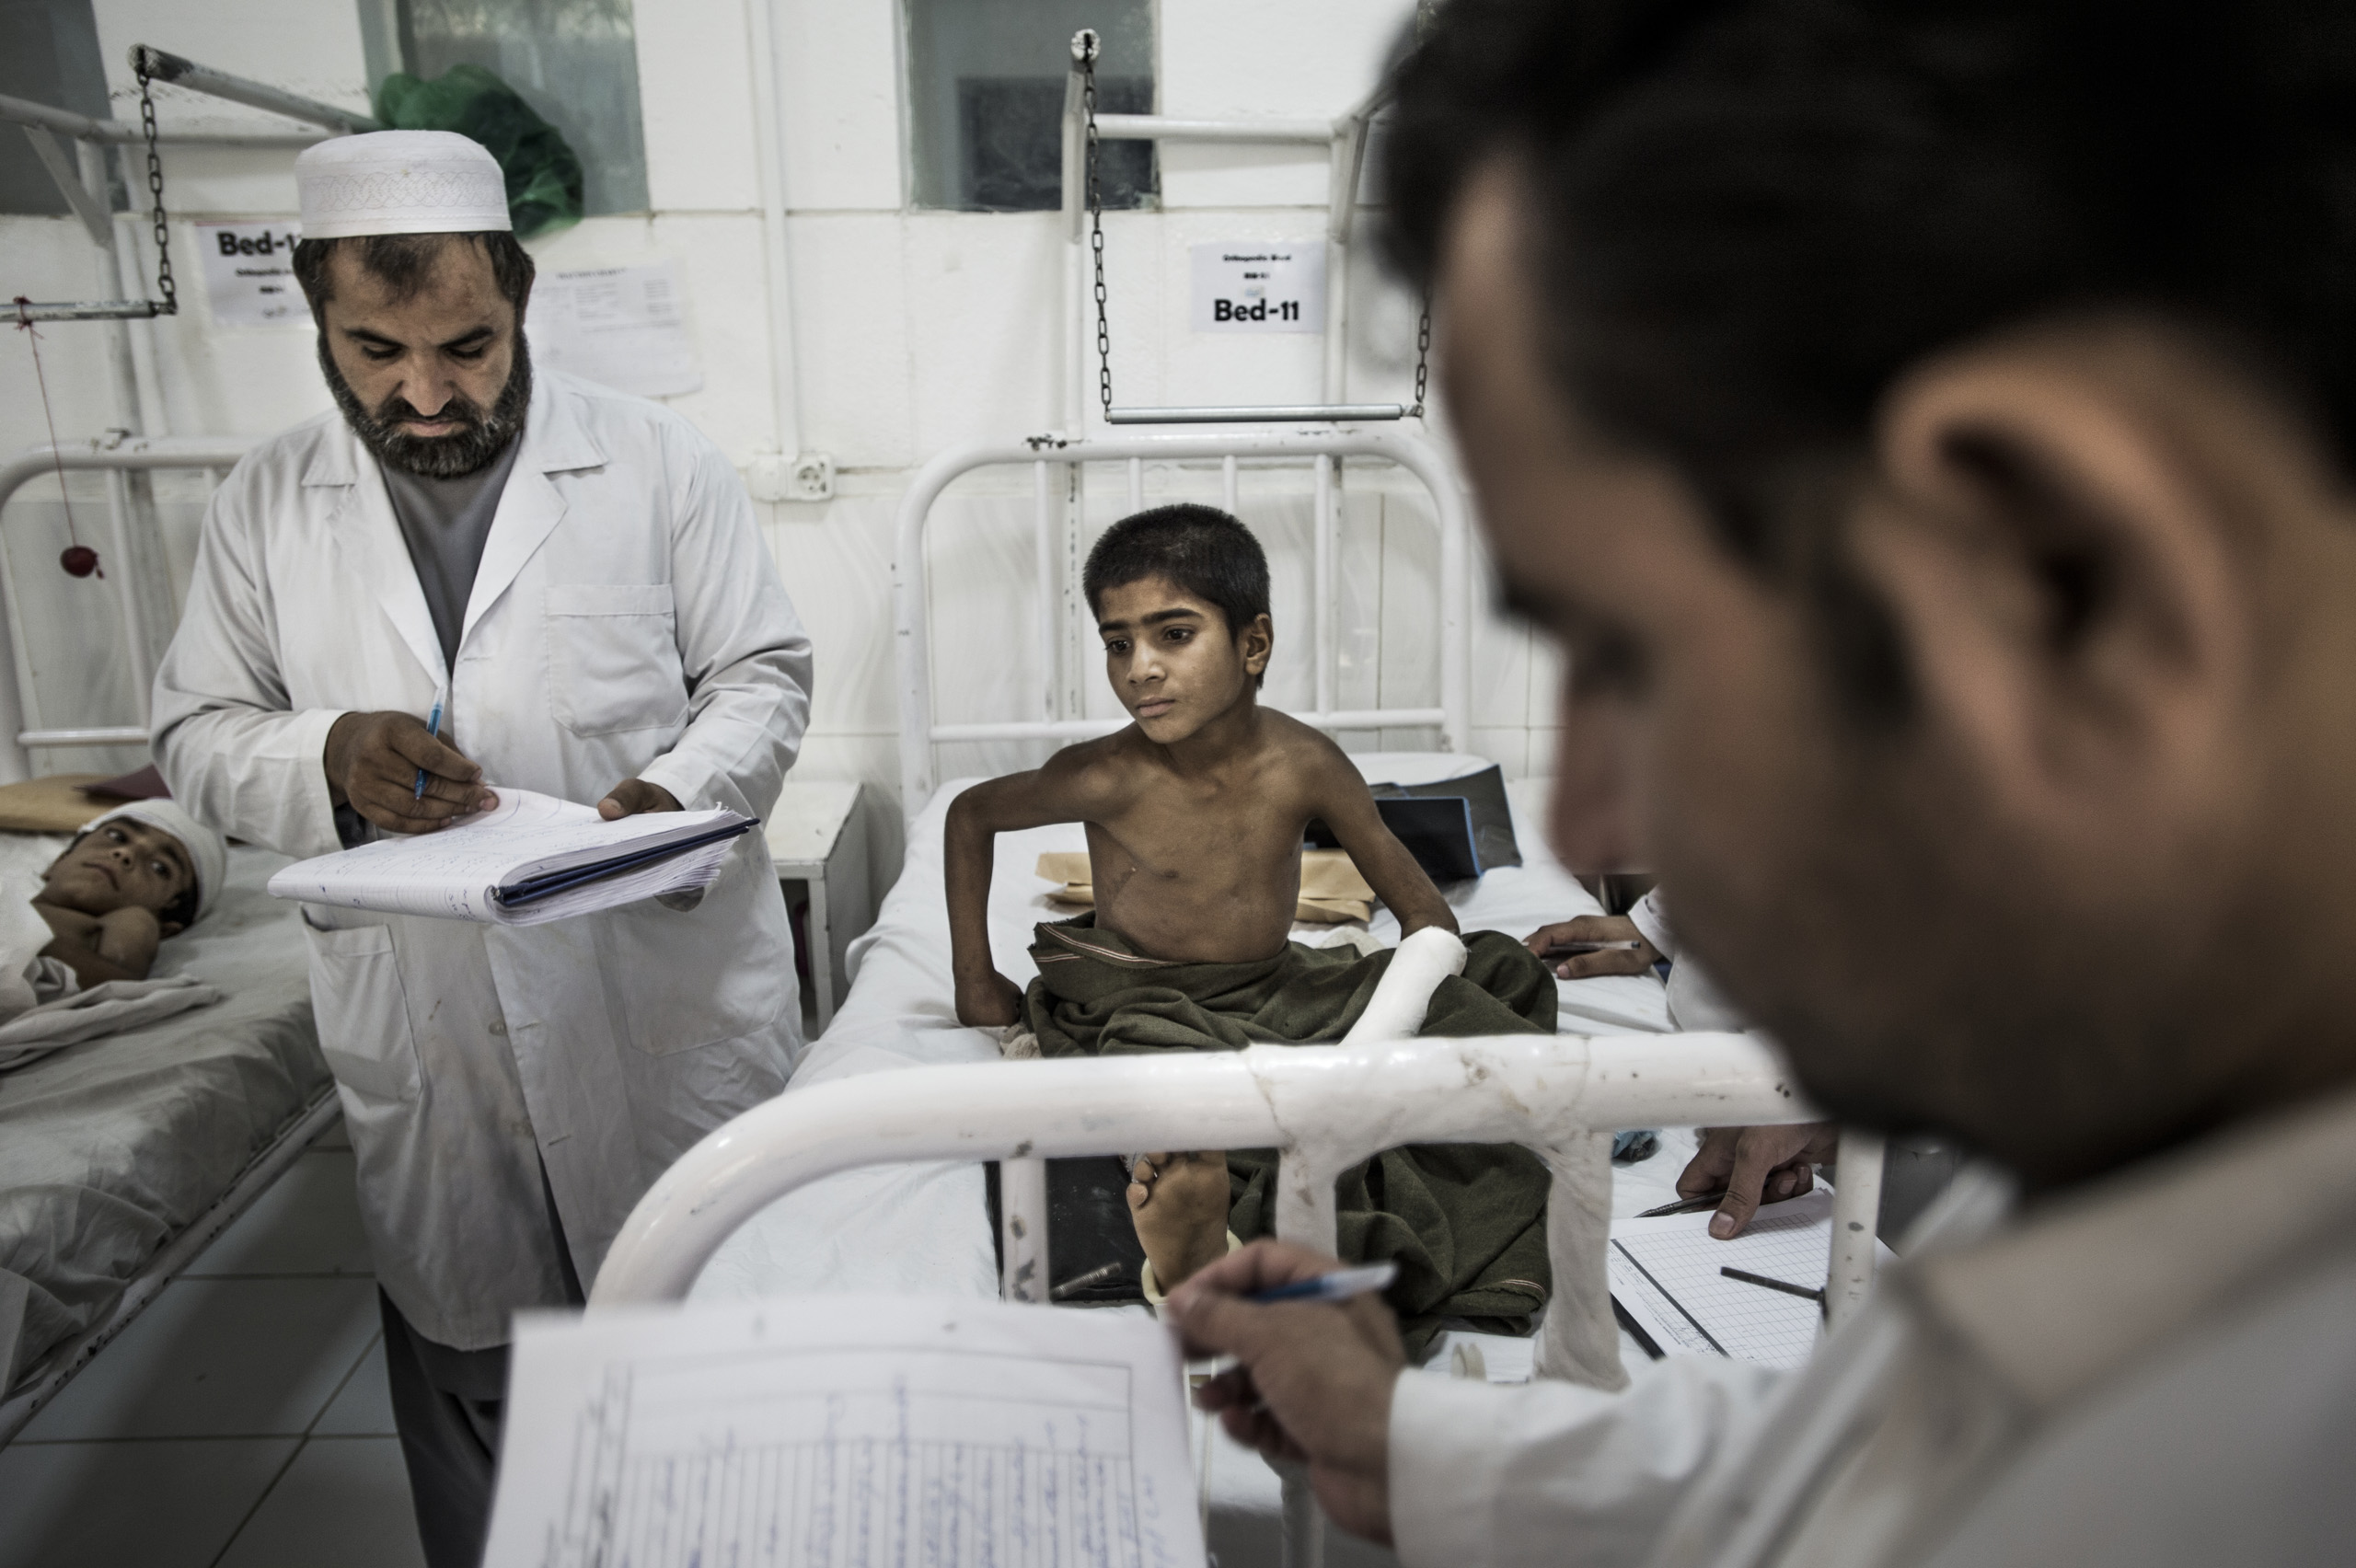 12-year-old Abdul Wali  is examined in the orthopedic ward in Boost hospital, which is run by Doctors Without Borders, Lashkar Gah, Helman, Afghanistan, June 2016.